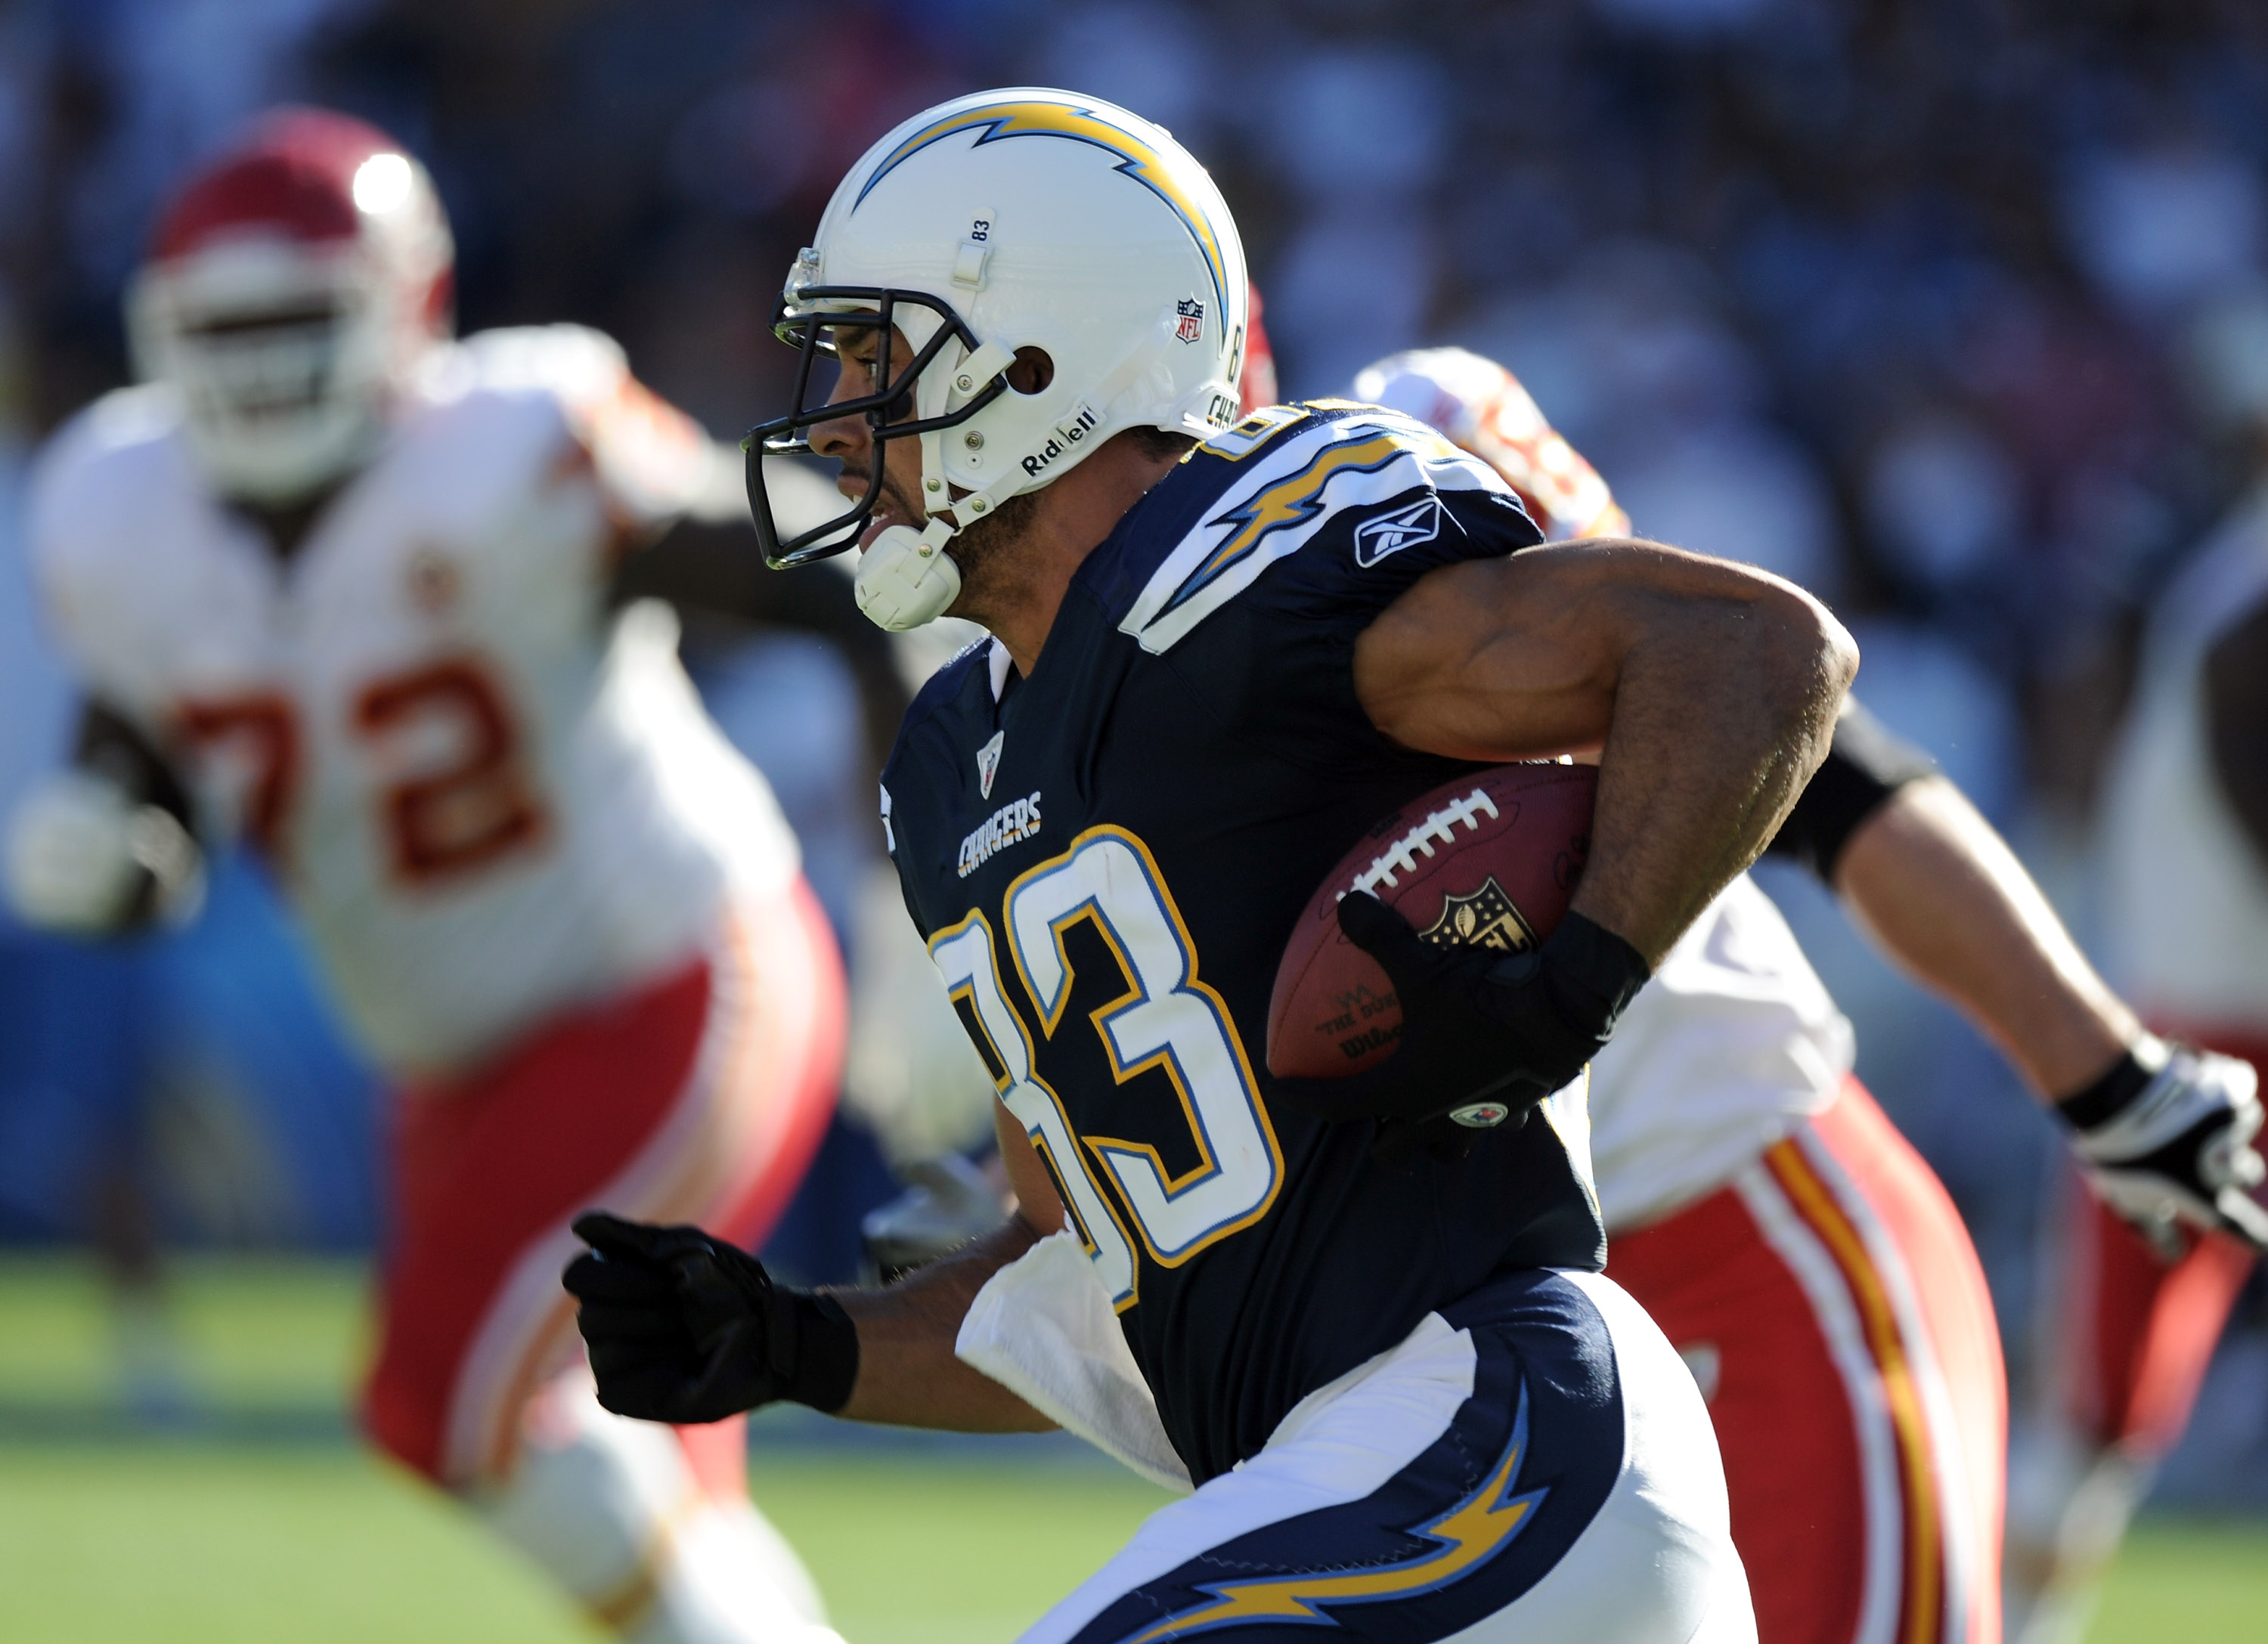 SAN DIEGO, CA - DECEMBER 12:  Vincent Jackson #83 of the San Diego Chargers carries the ball on a reverse against the Kansas City Chiefs during the first quarter at Qualcomm Stadium on December 12, 2010 in San Diego, California.  (Photo by Harry How/Getty